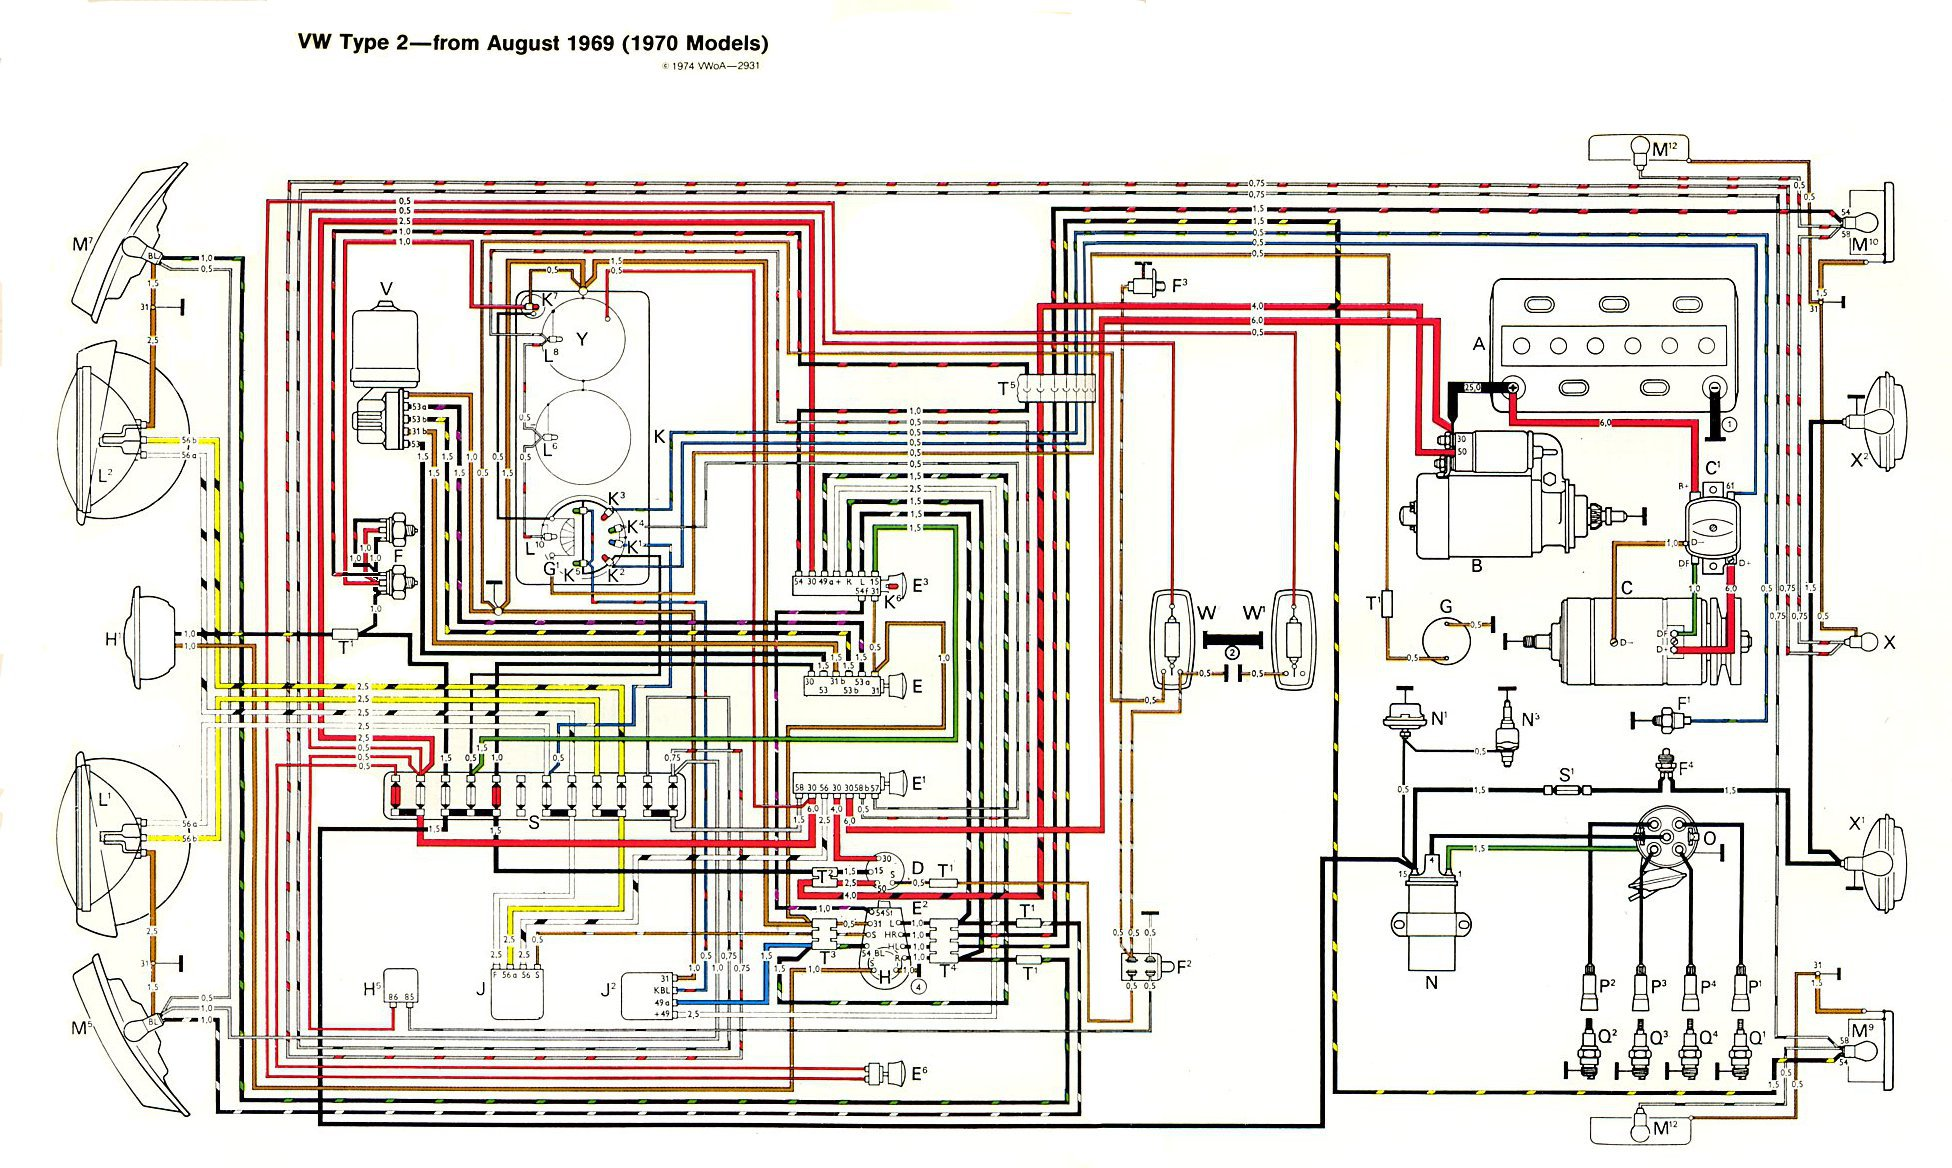 baybus_70 thesamba com type 2 wiring diagrams 1969 vw beetle wiring diagram at bayanpartner.co